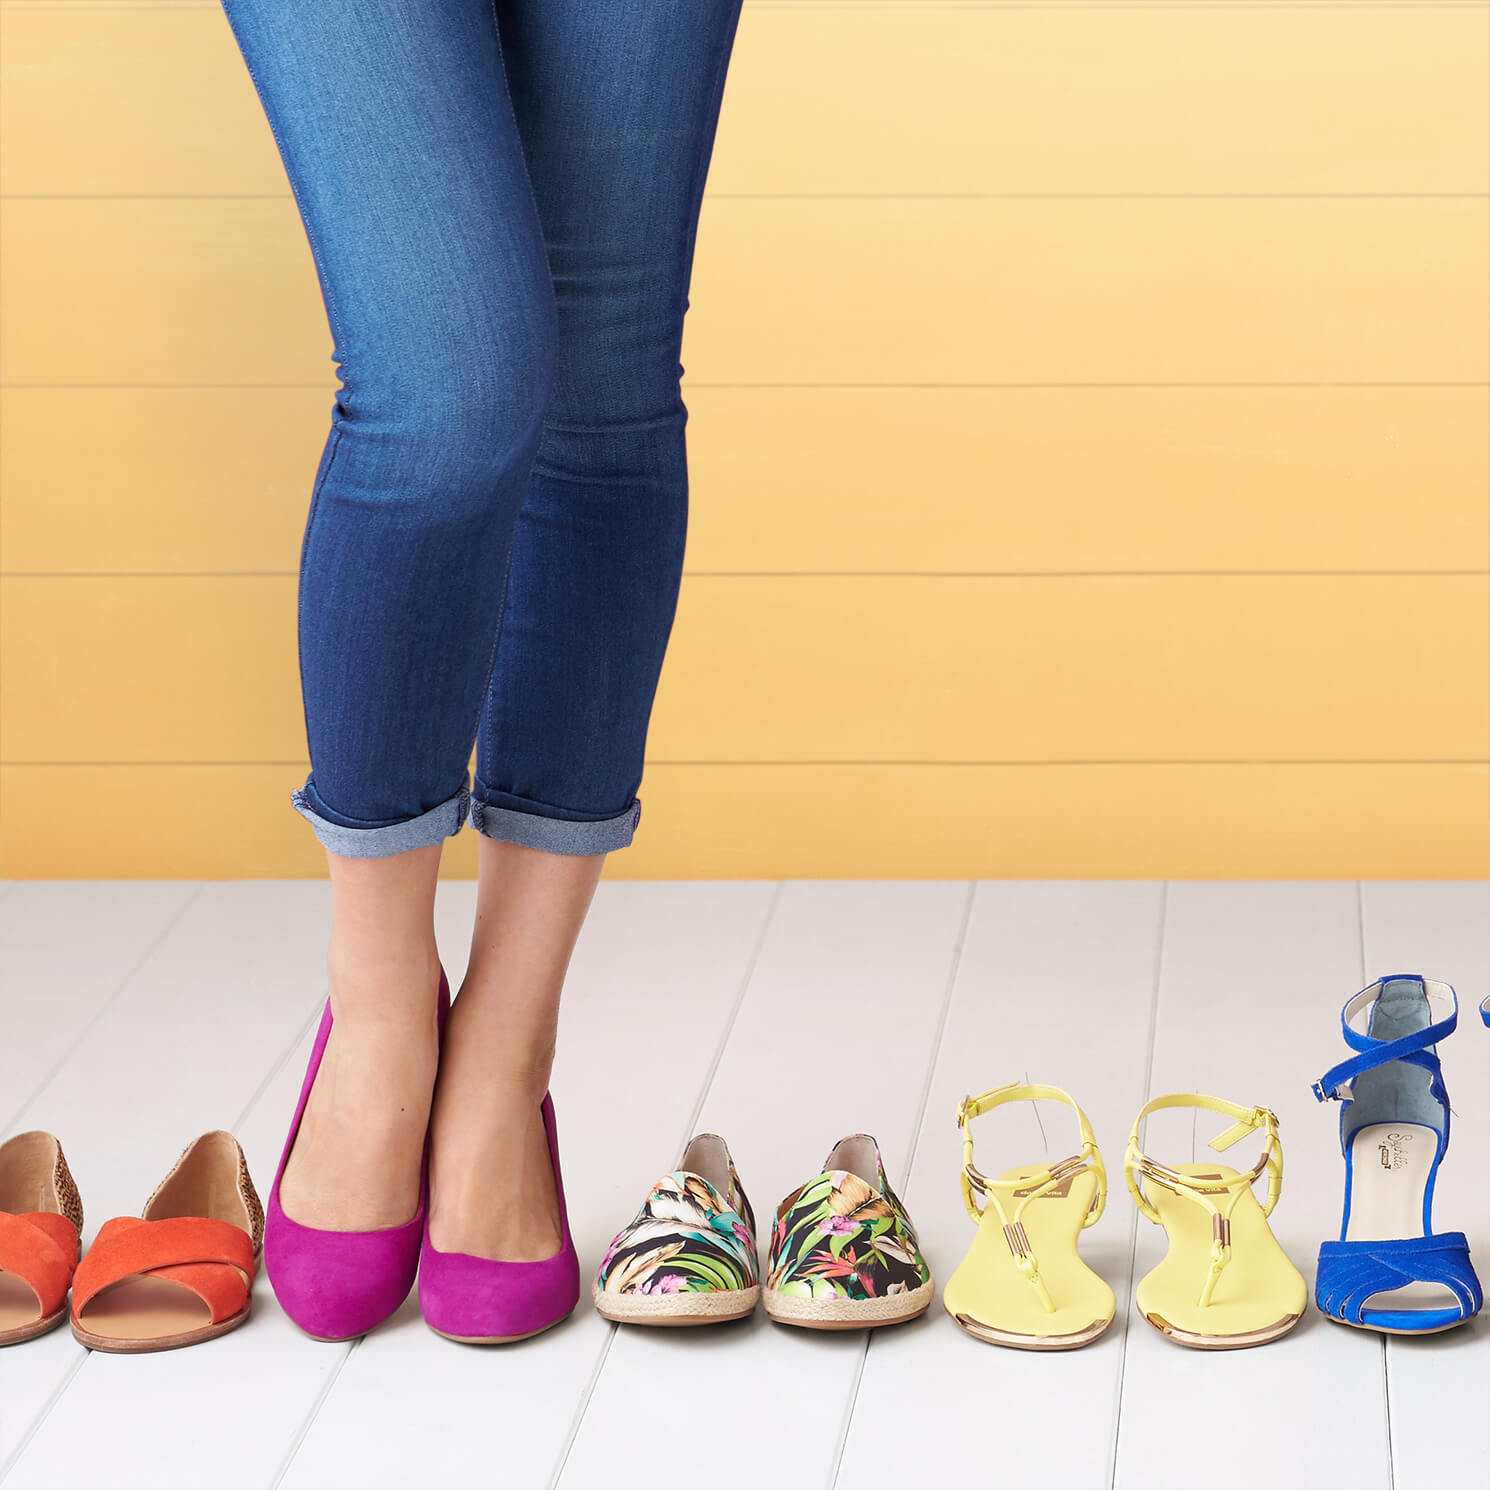 How To Get Shoes In Your Fix | Stitch Fix Style